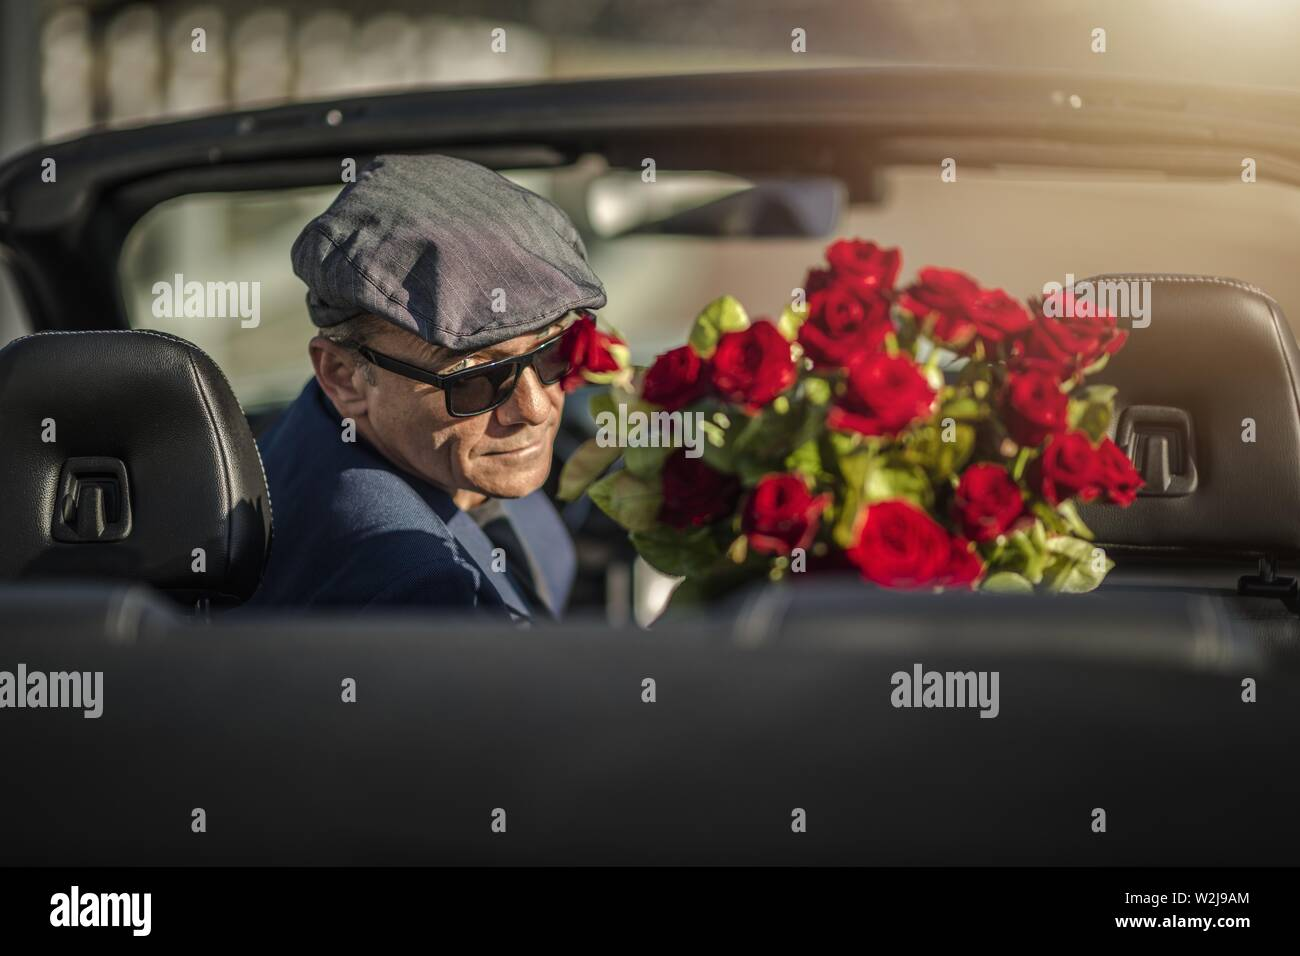 Sugar Daddy Eyes Seduction. Attractive Caucasian Men with Roses Awaiting His Girlfriend While Seating in a Convertible Car. - Stock Image